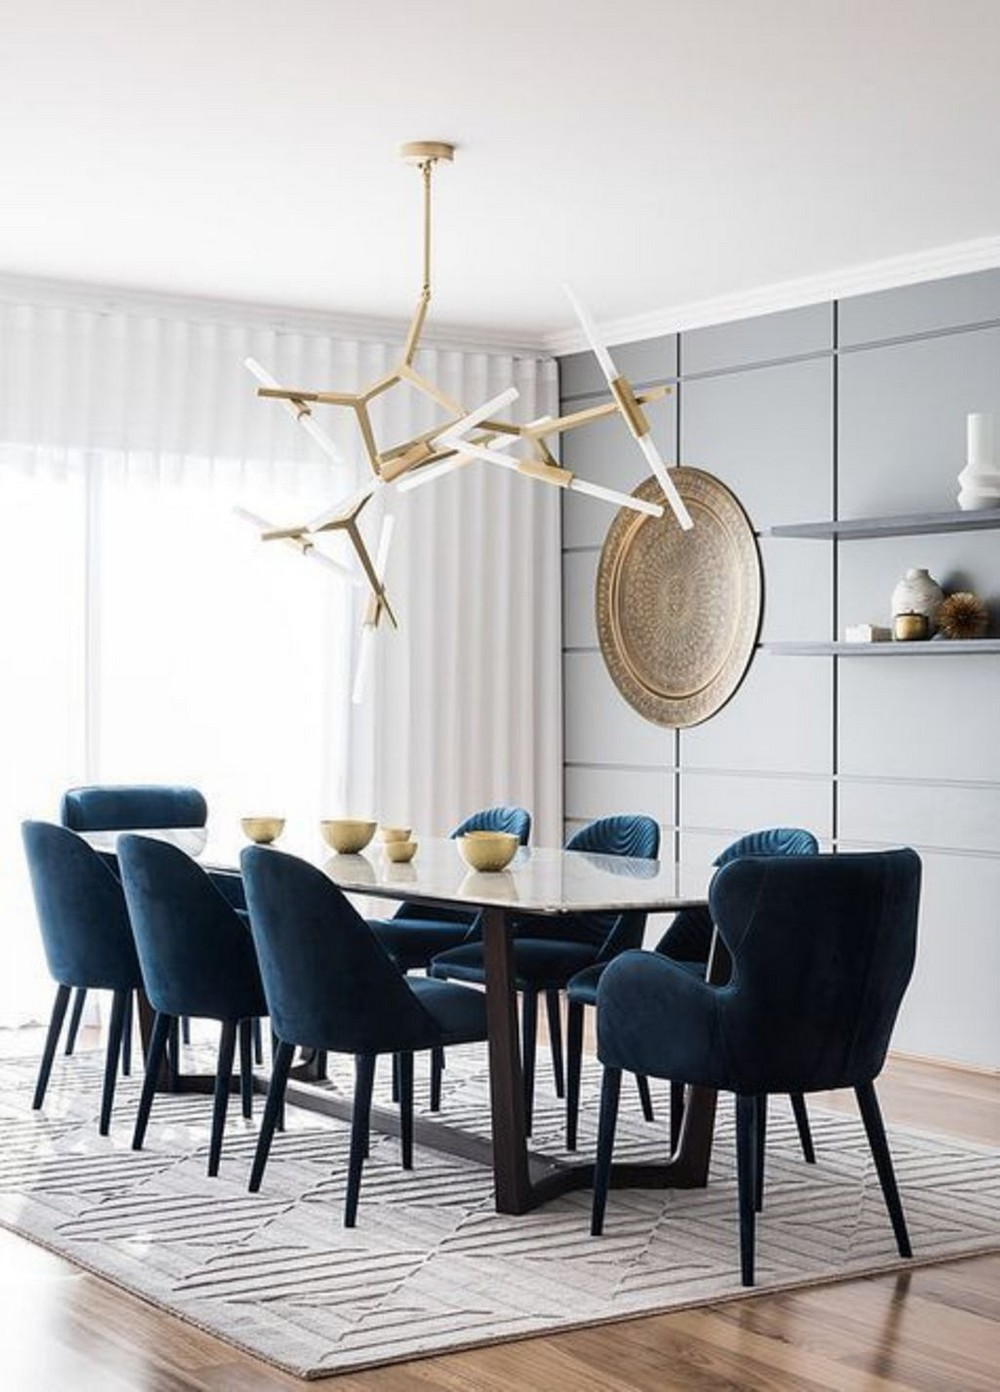 Marvelous Dining Room Designs by Elena Ponomarenko and Vitta Group elena ponomarenko Marvelous Dining Room Designs by Elena Ponomarenko and Vitta Group 2 Pinterest 1